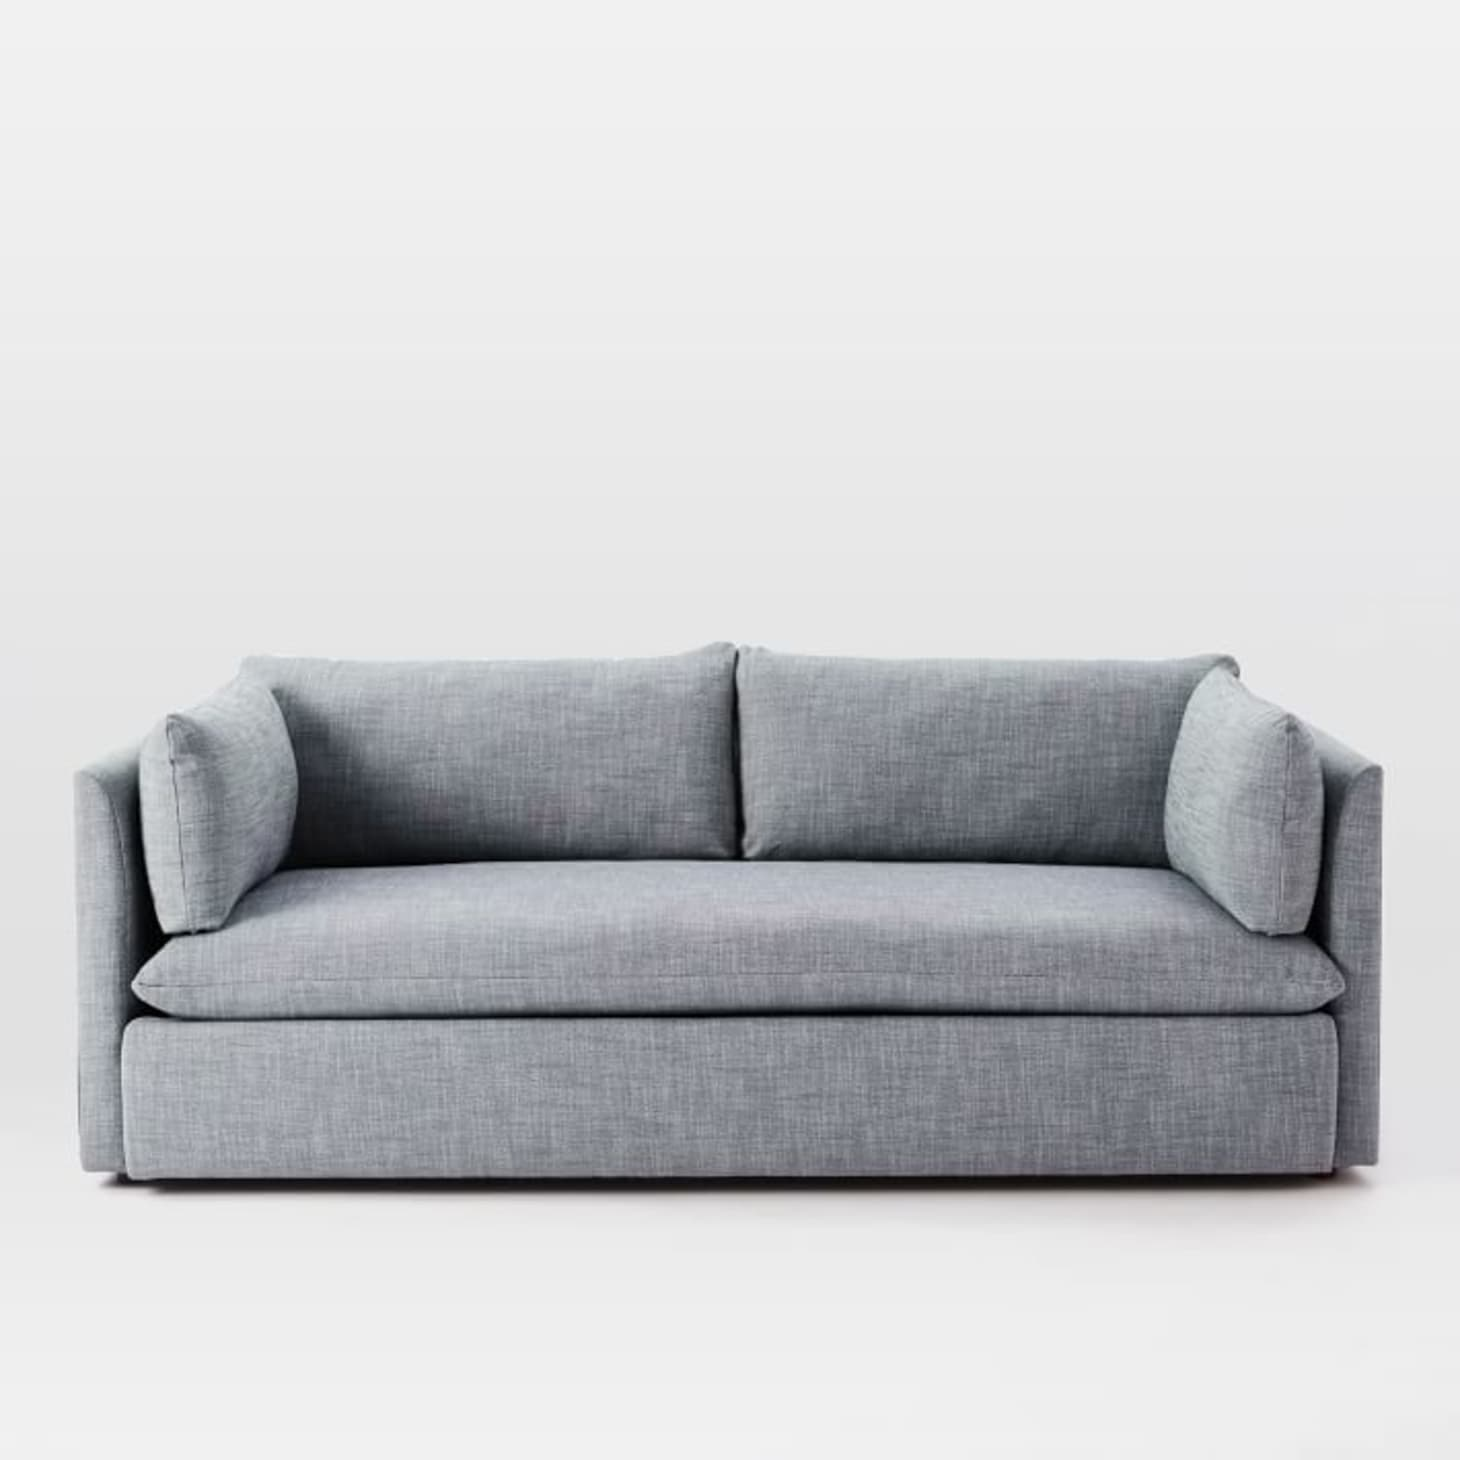 Surprising The Most Comfortable Sofas At West Elm Tested Reviewed Caraccident5 Cool Chair Designs And Ideas Caraccident5Info